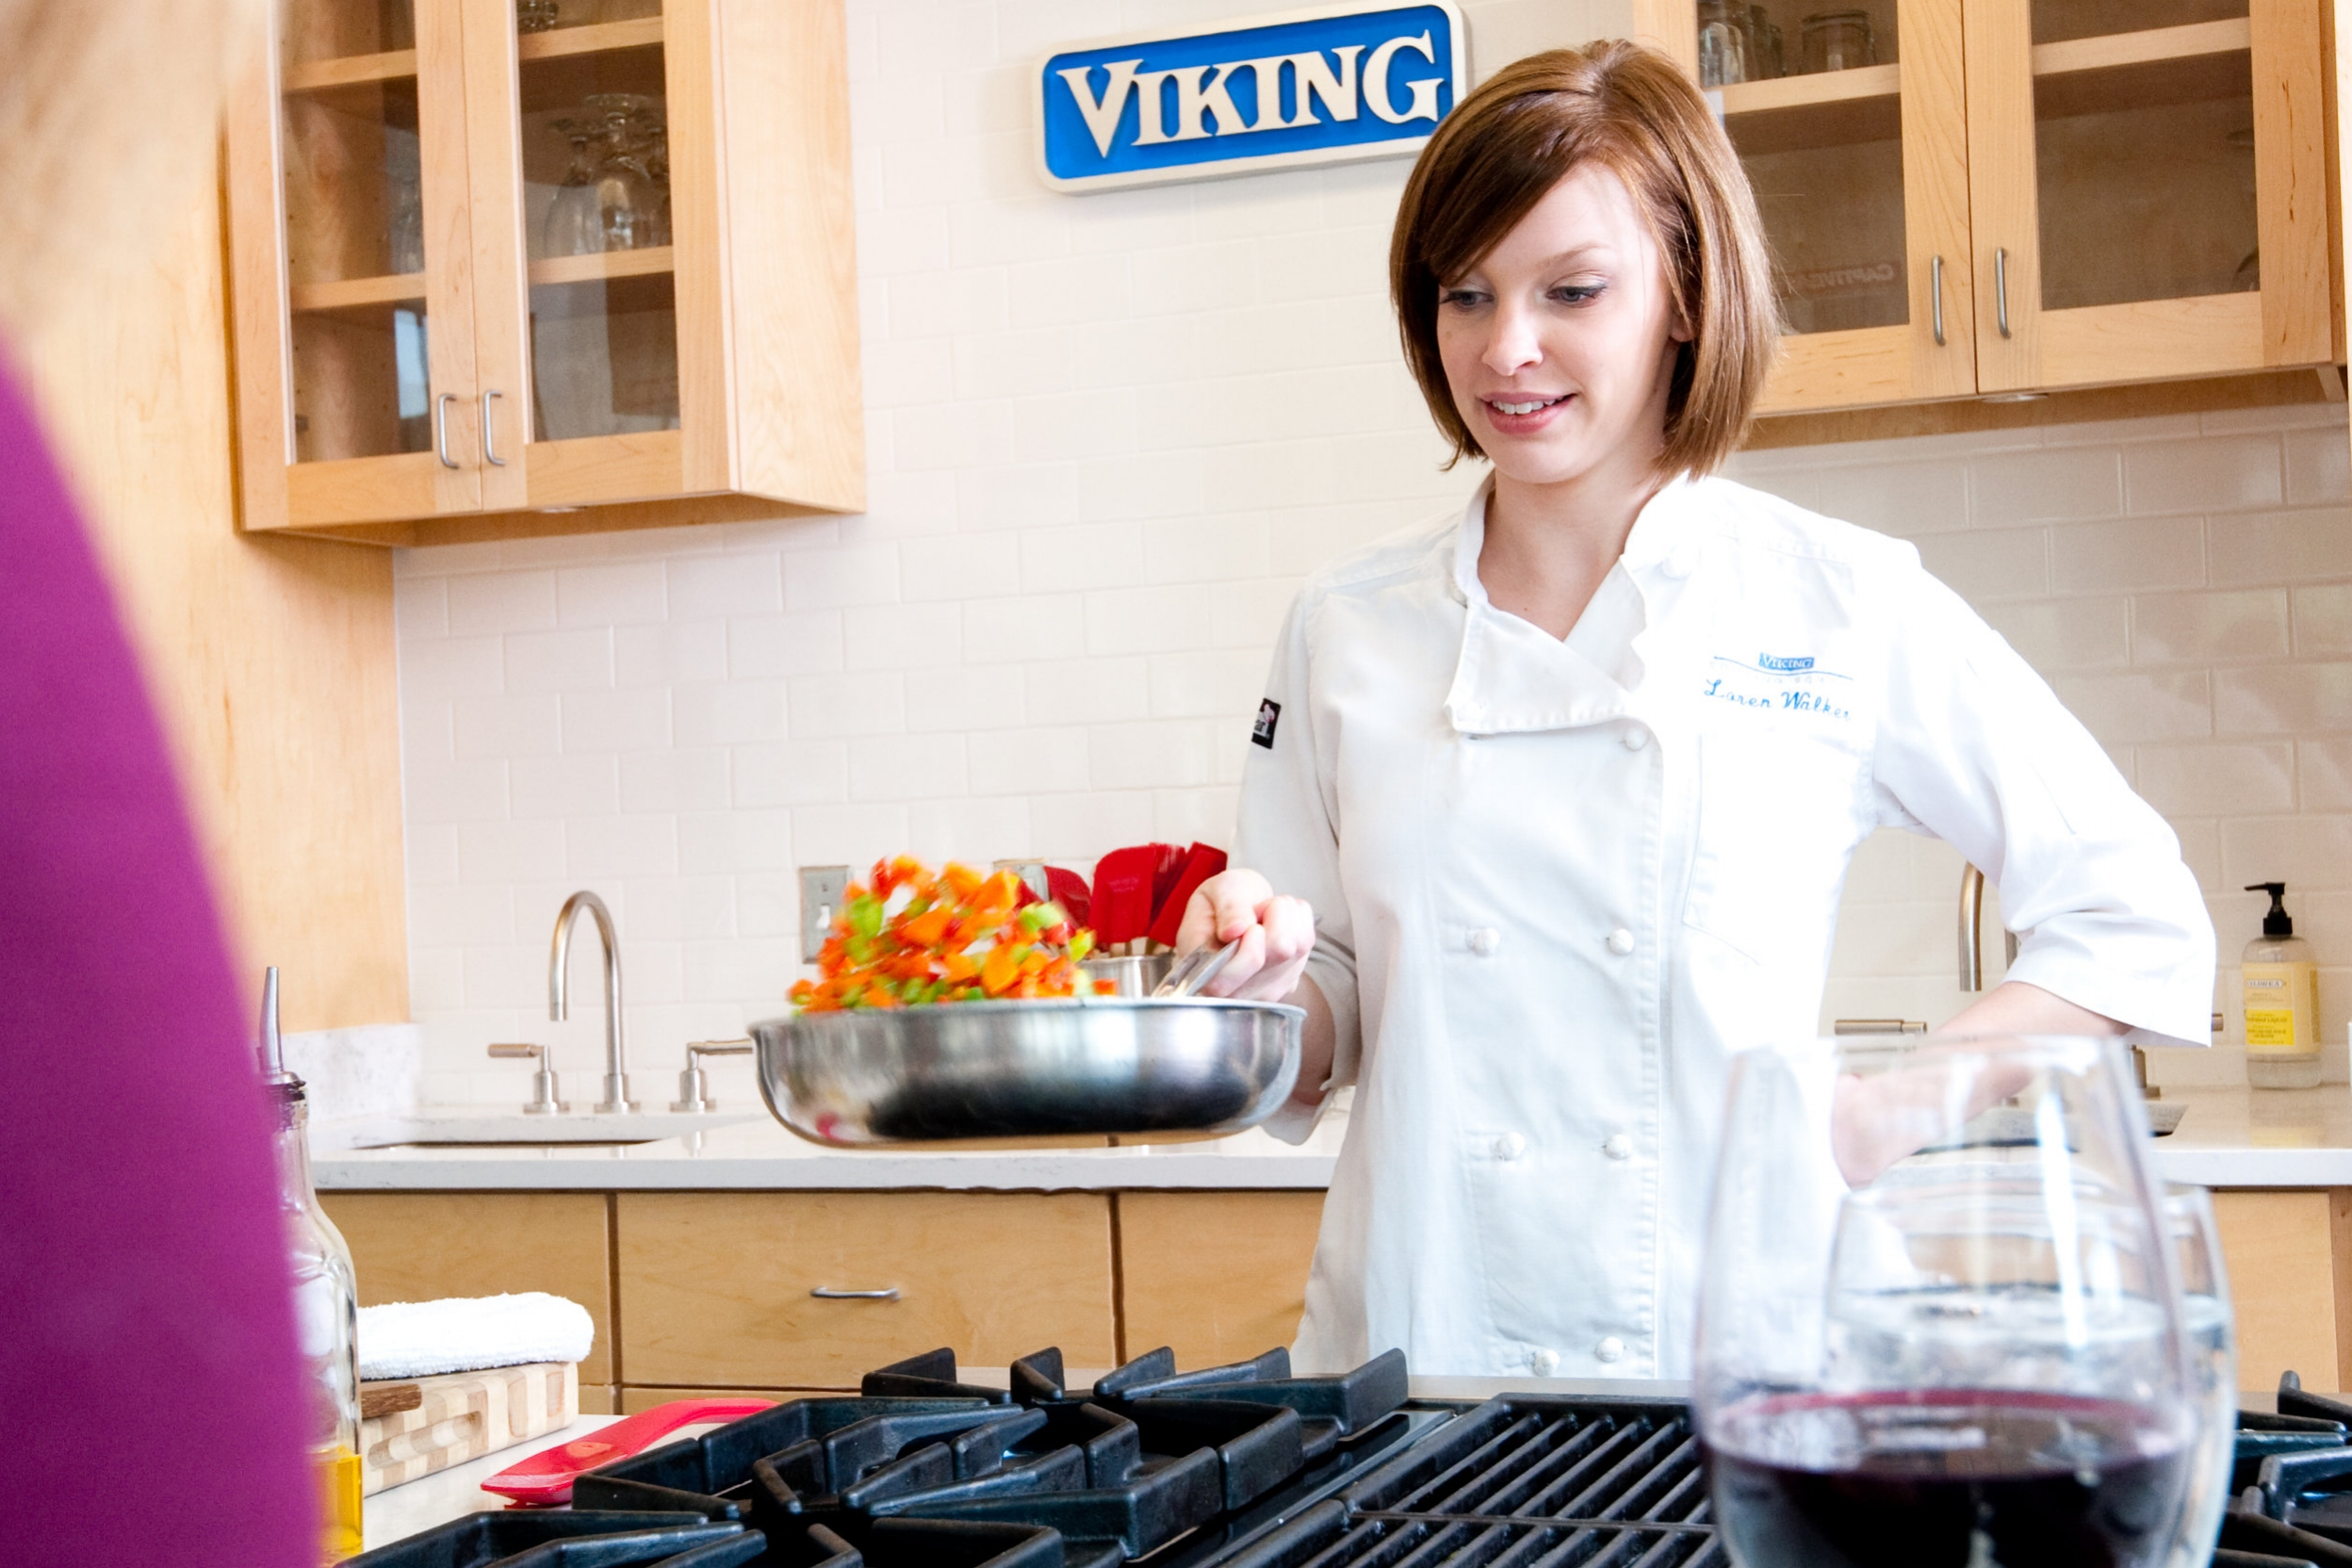 Viking Cooking School - The Viking Cooking School may be the most enjoyable school on earth - even the homework is fun.